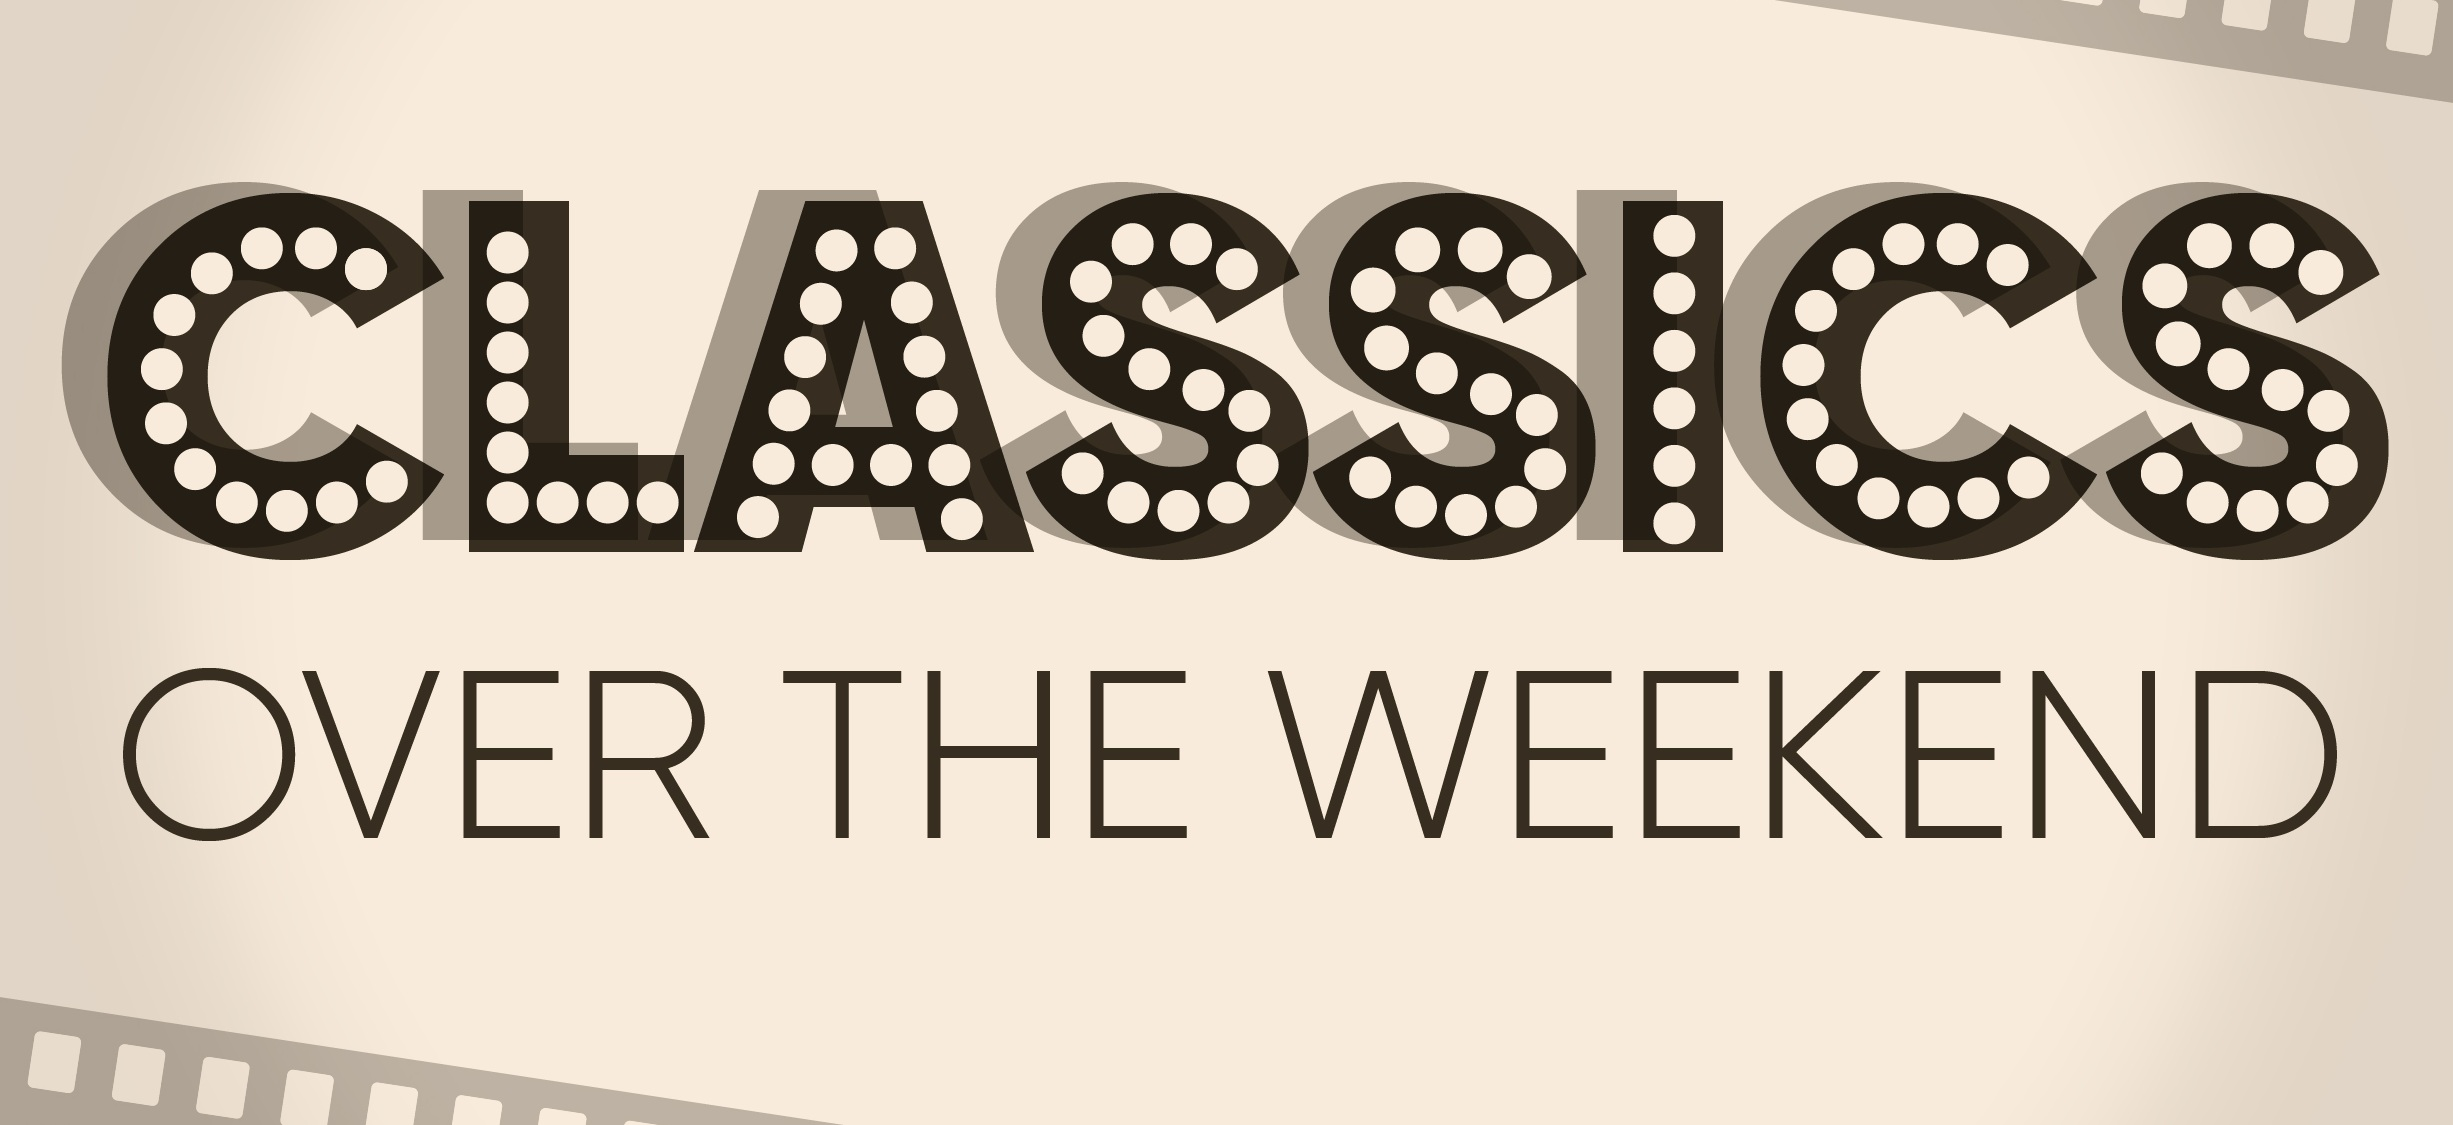 Classics Over the Weekend - Infographic Classic Movies Etc